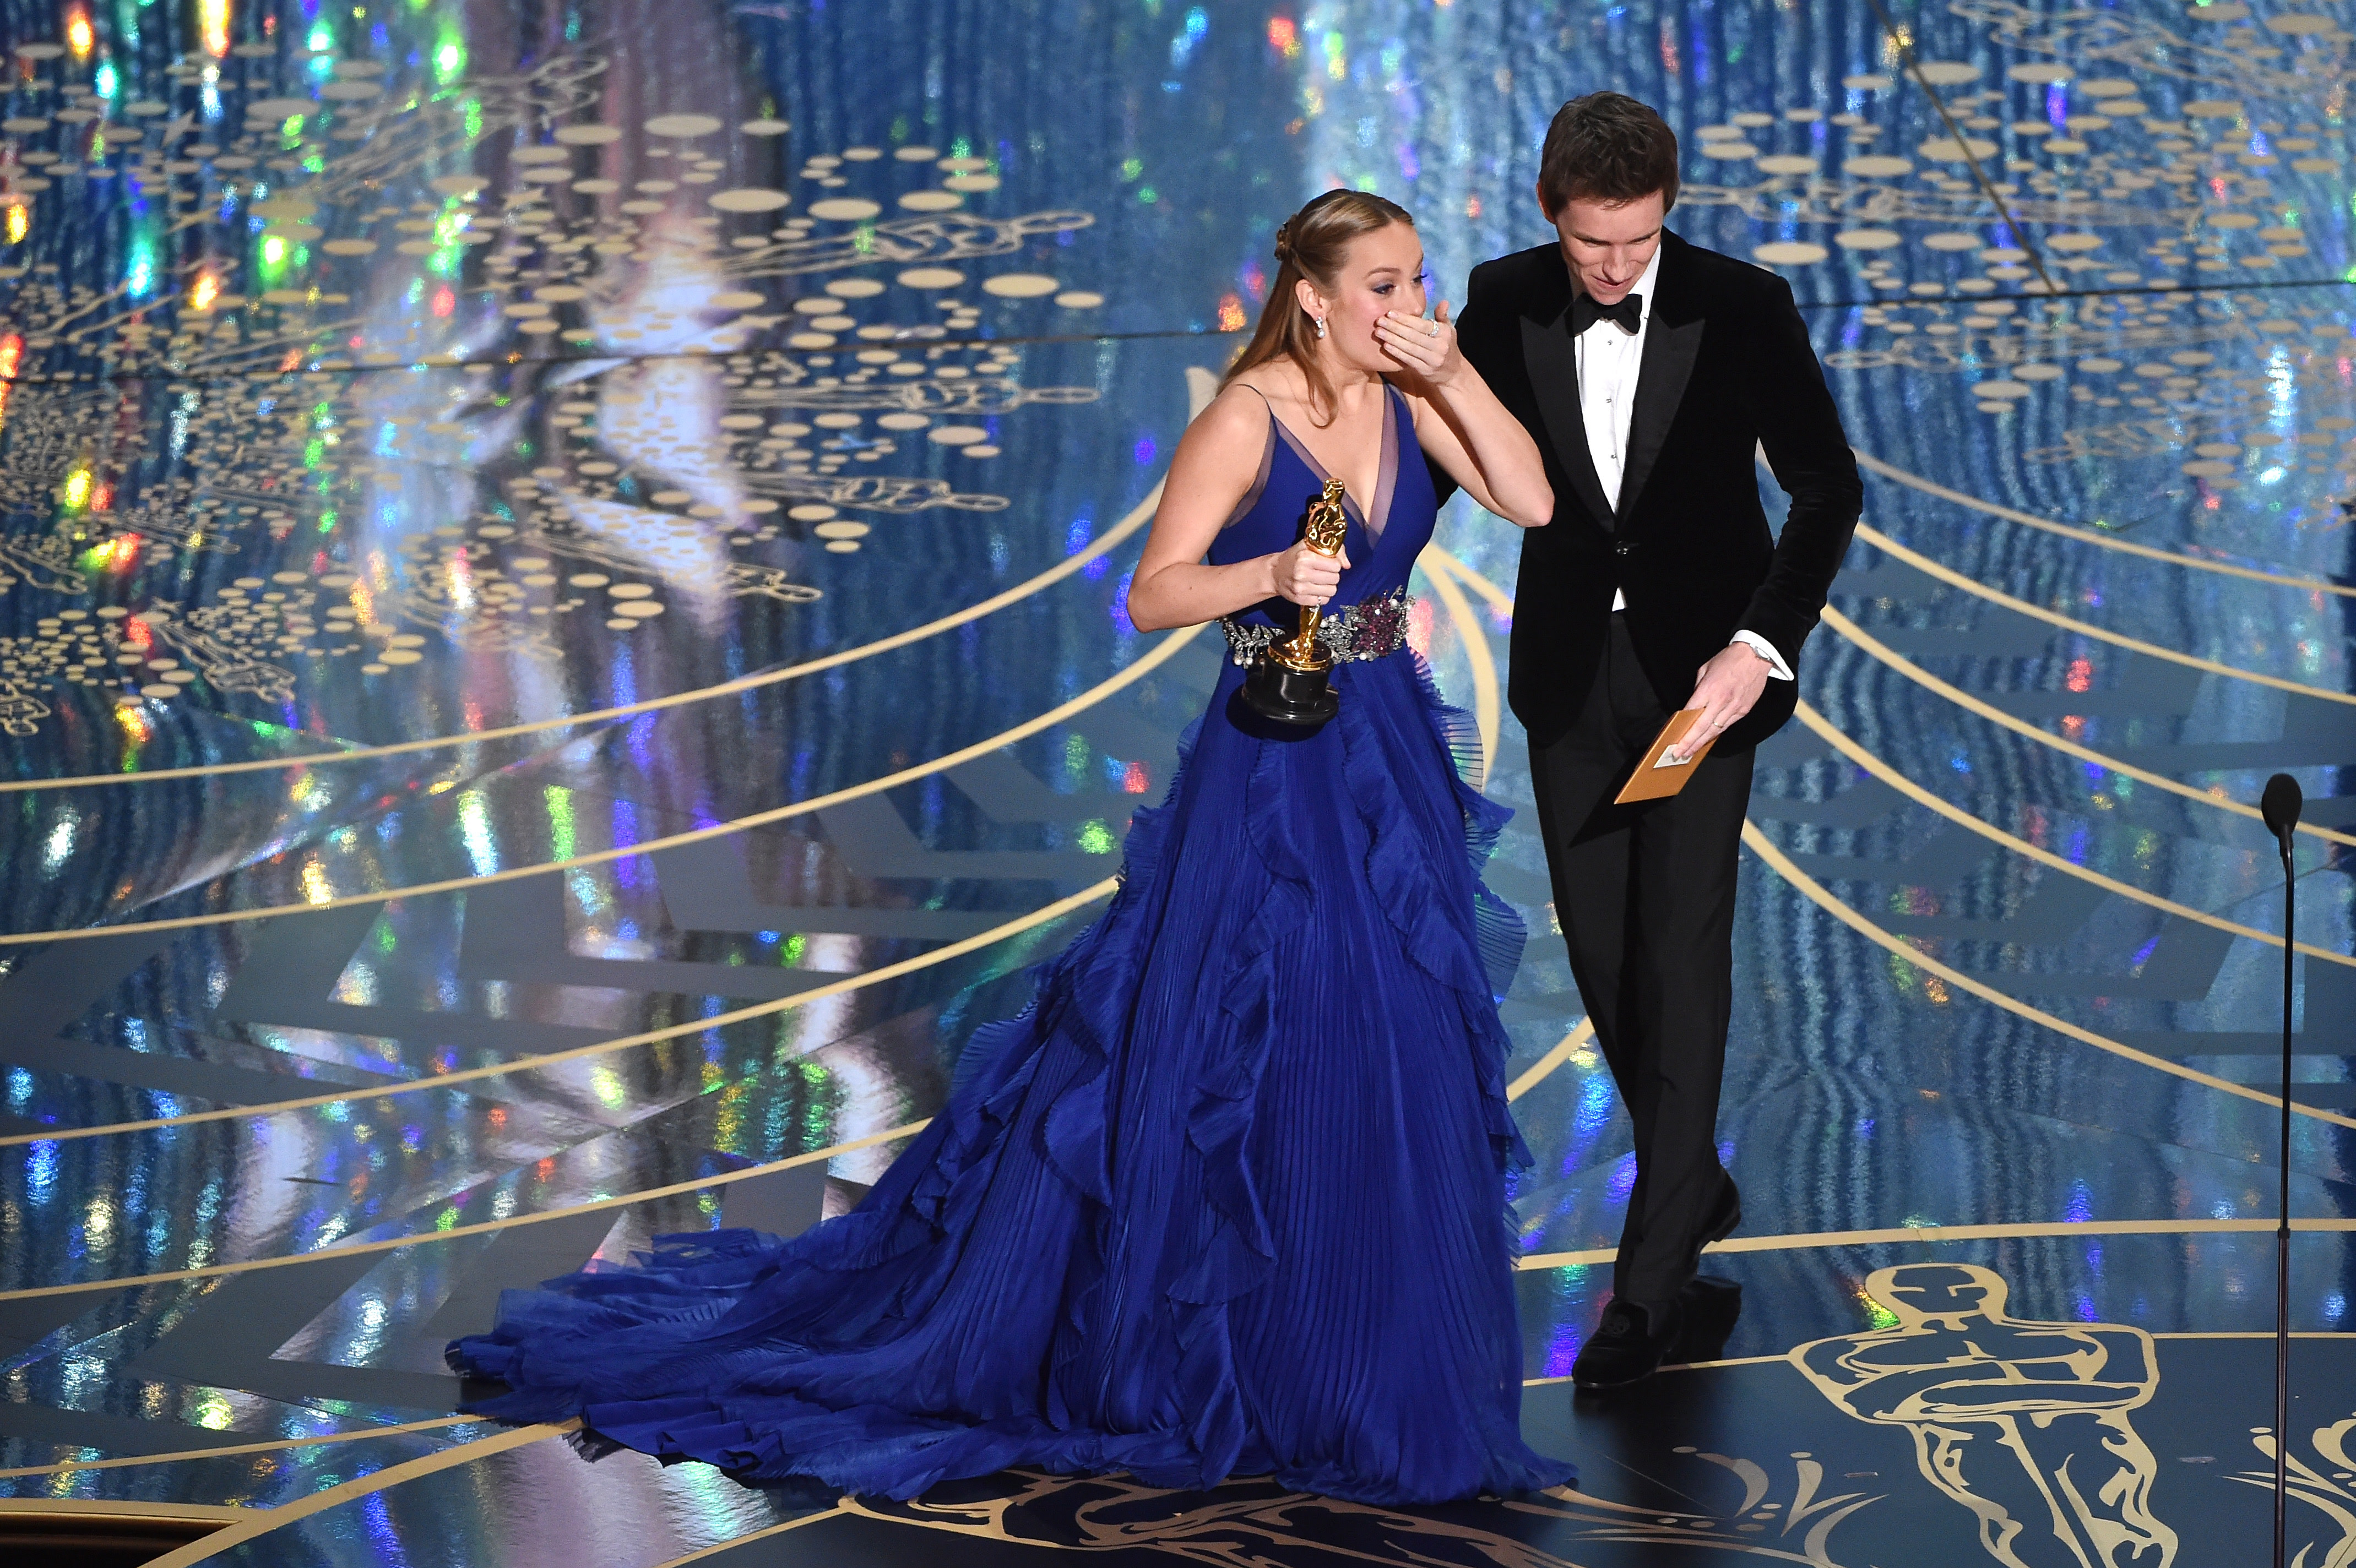 Brie Larson is a Best Actress Oscars 2016 Winner for Room ...